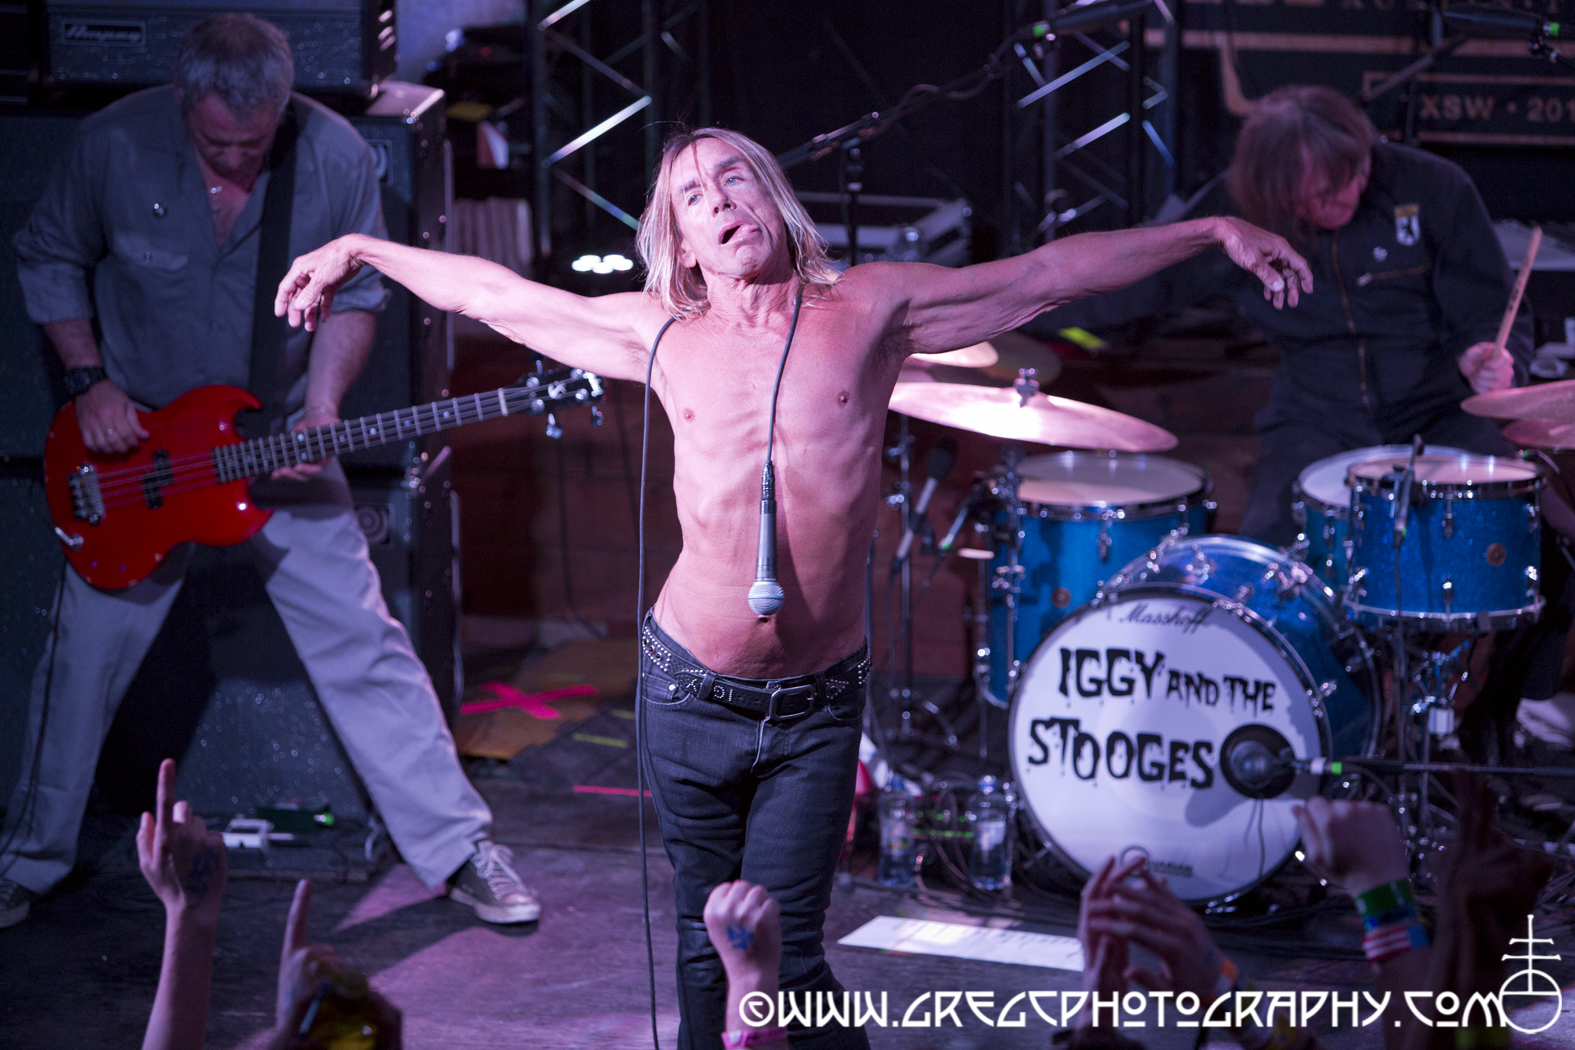 Iggy and The Stooges_17_20130313